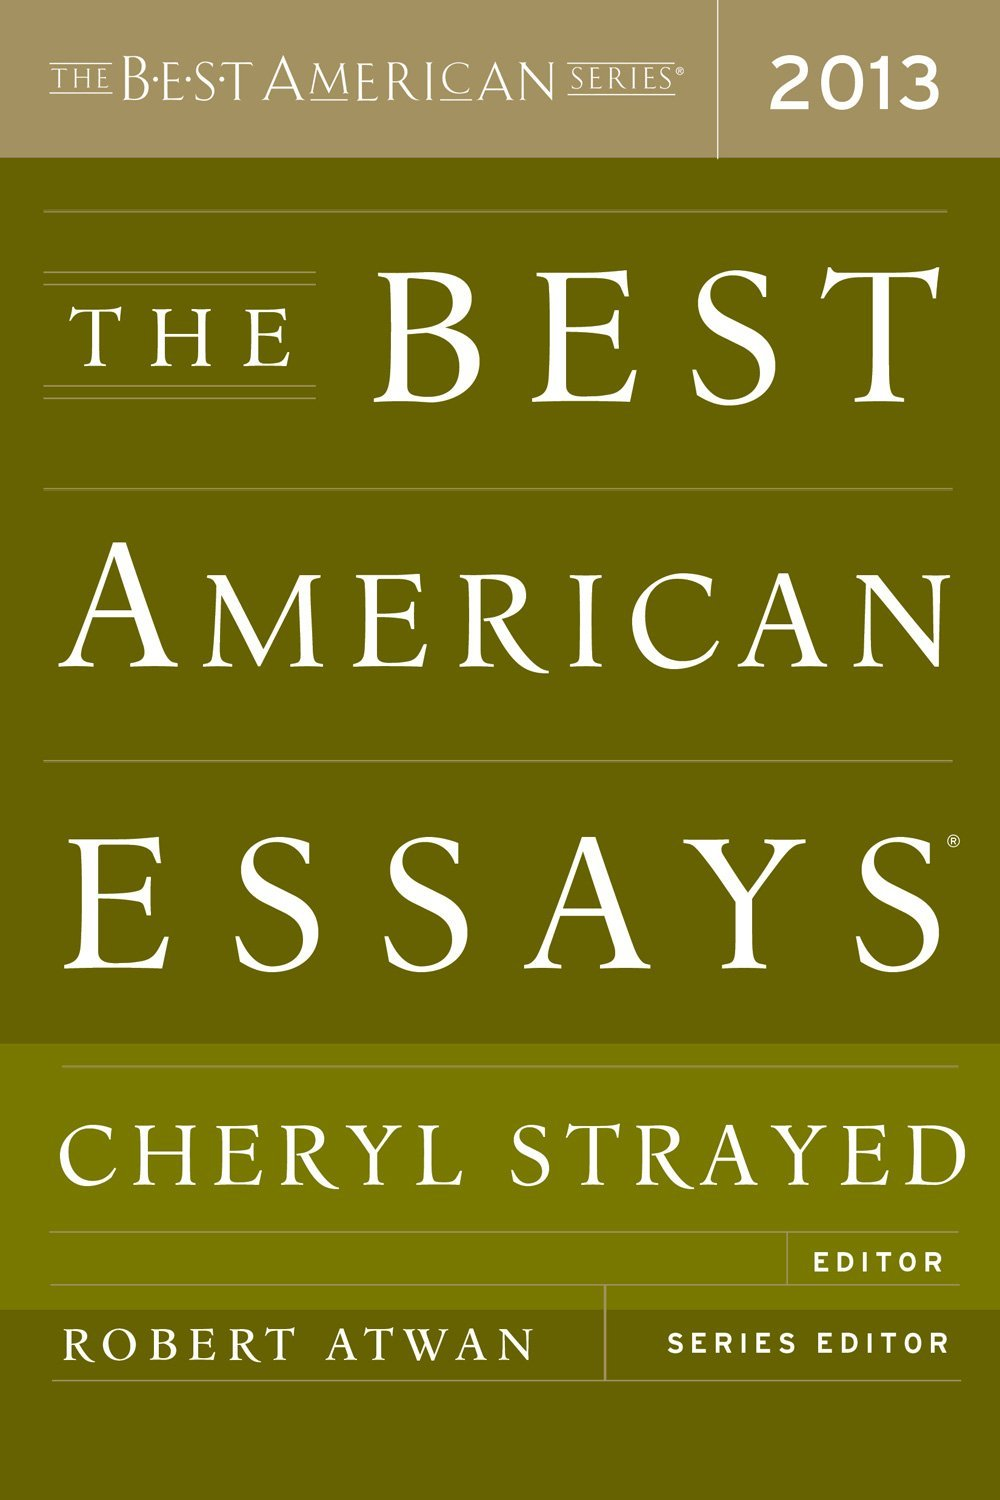 review the best american essays 2013 columbia journal